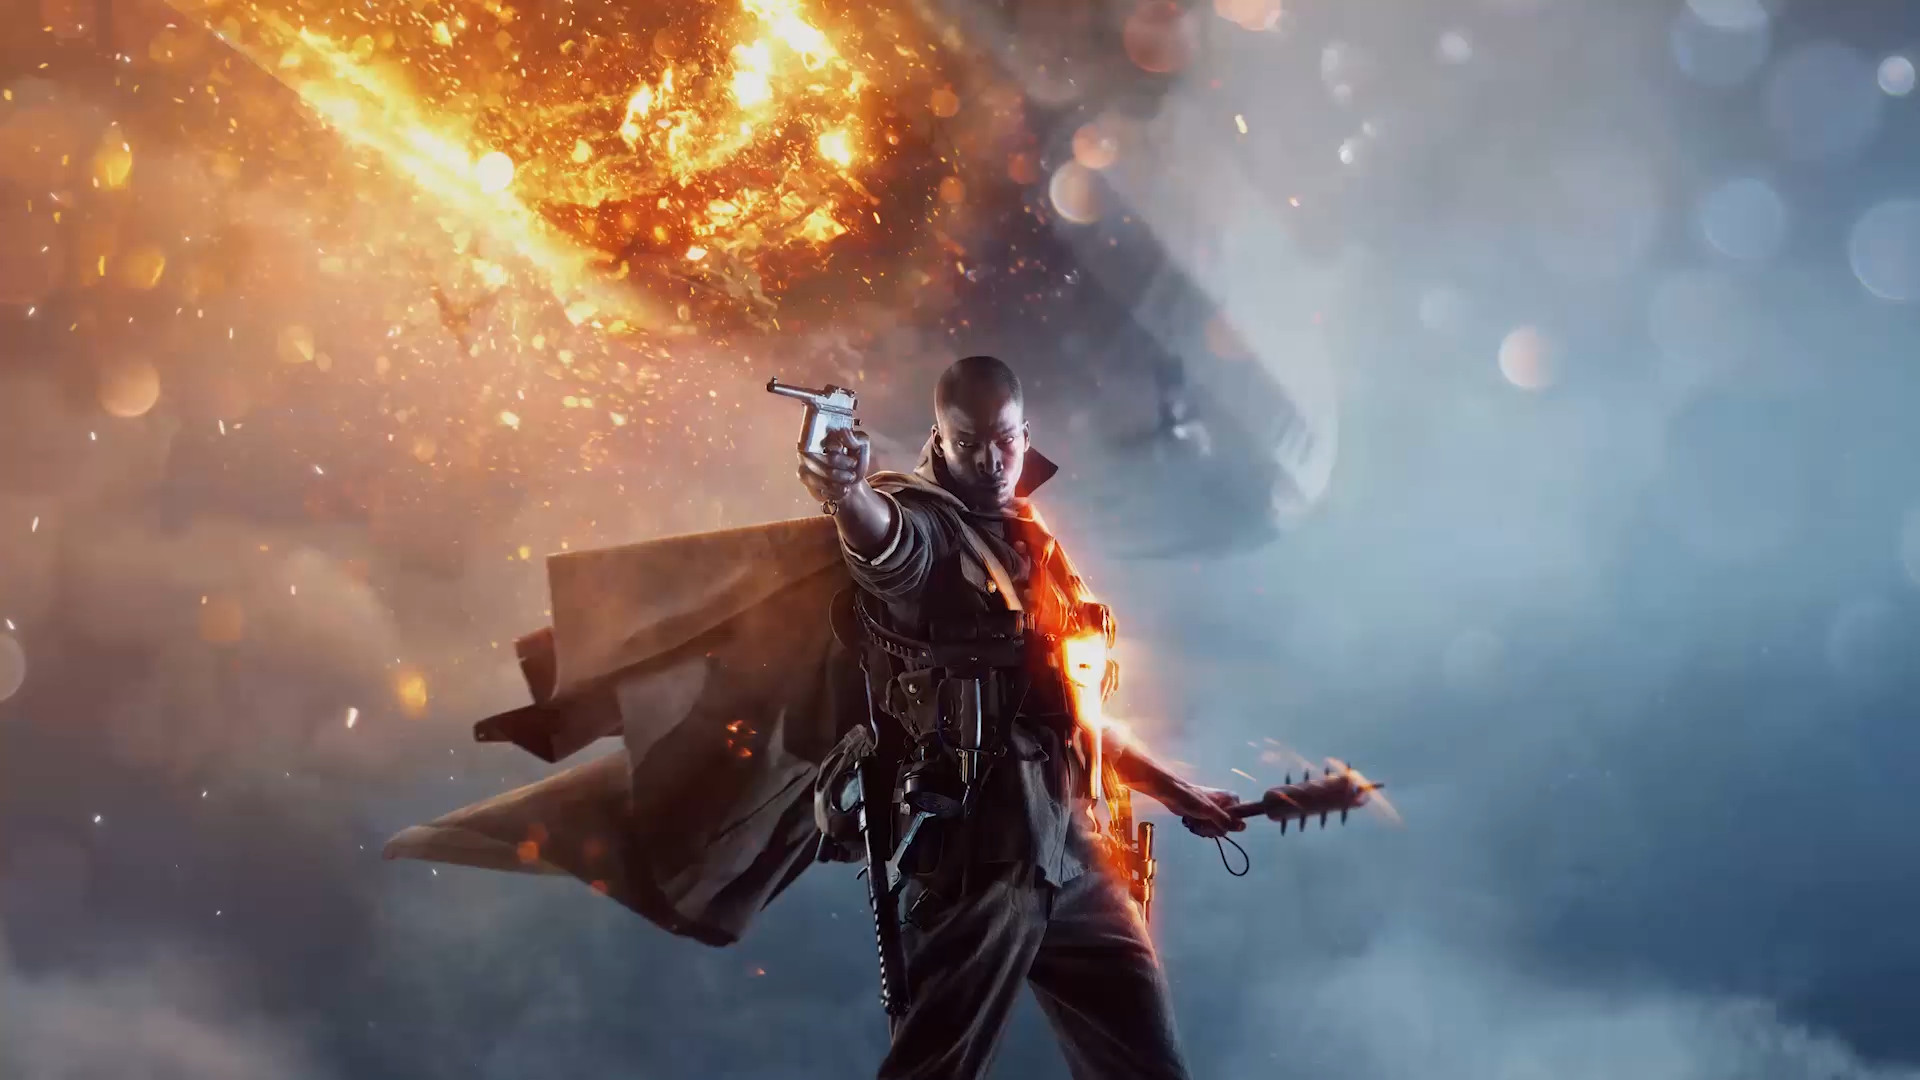 Battlefield 1 Will Be Shown Off At This EA Event In June rendition1.img